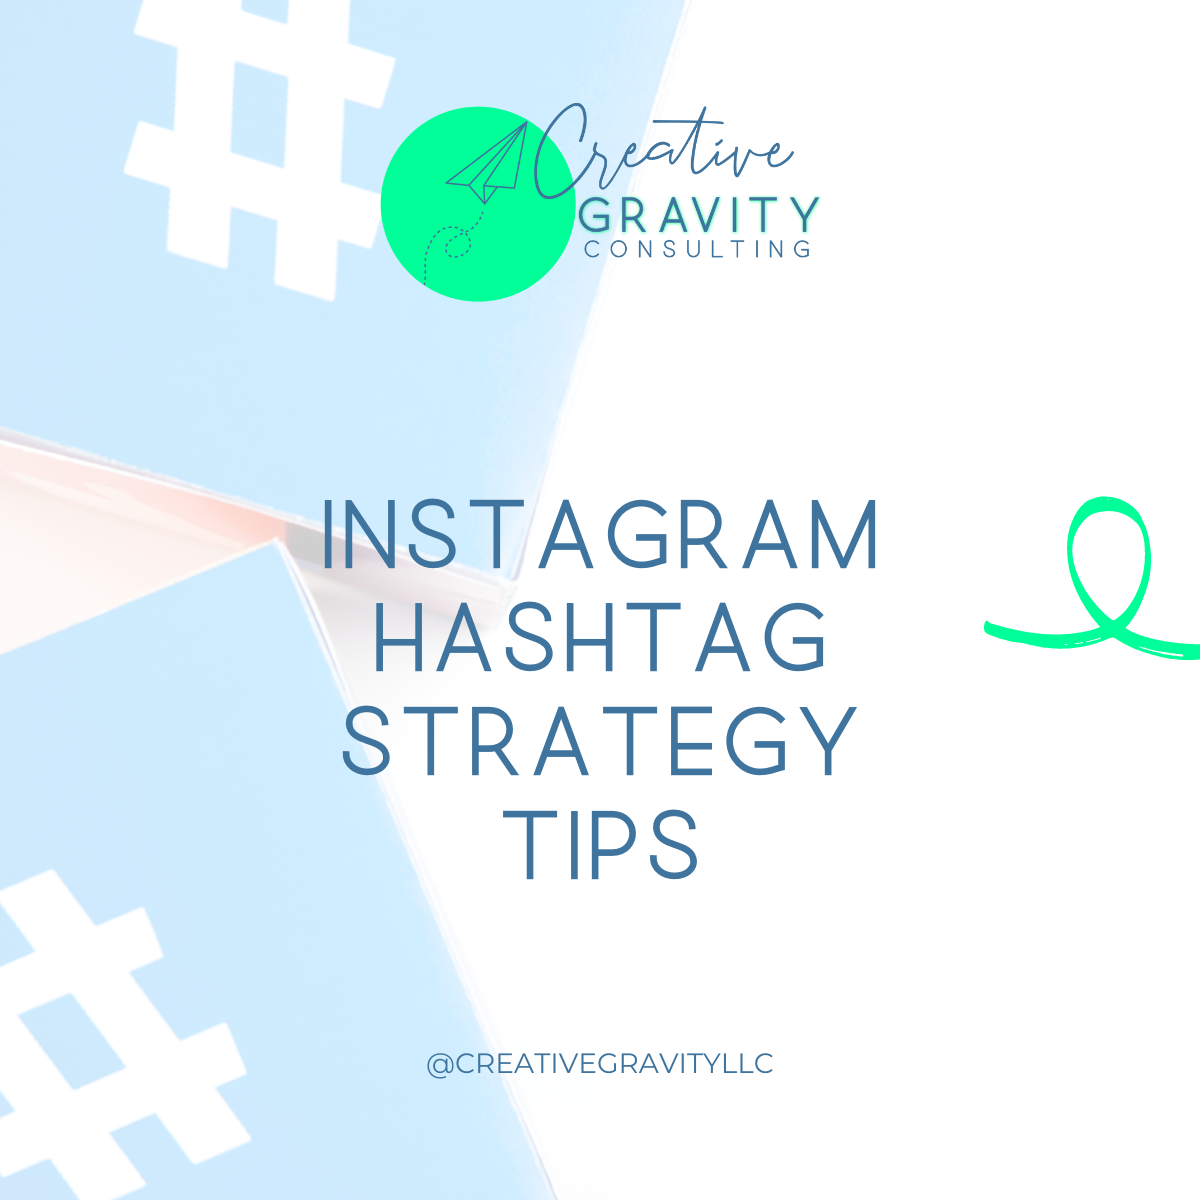 Learn-Instagram-Hashtag-Strategy-Tips-That-Work